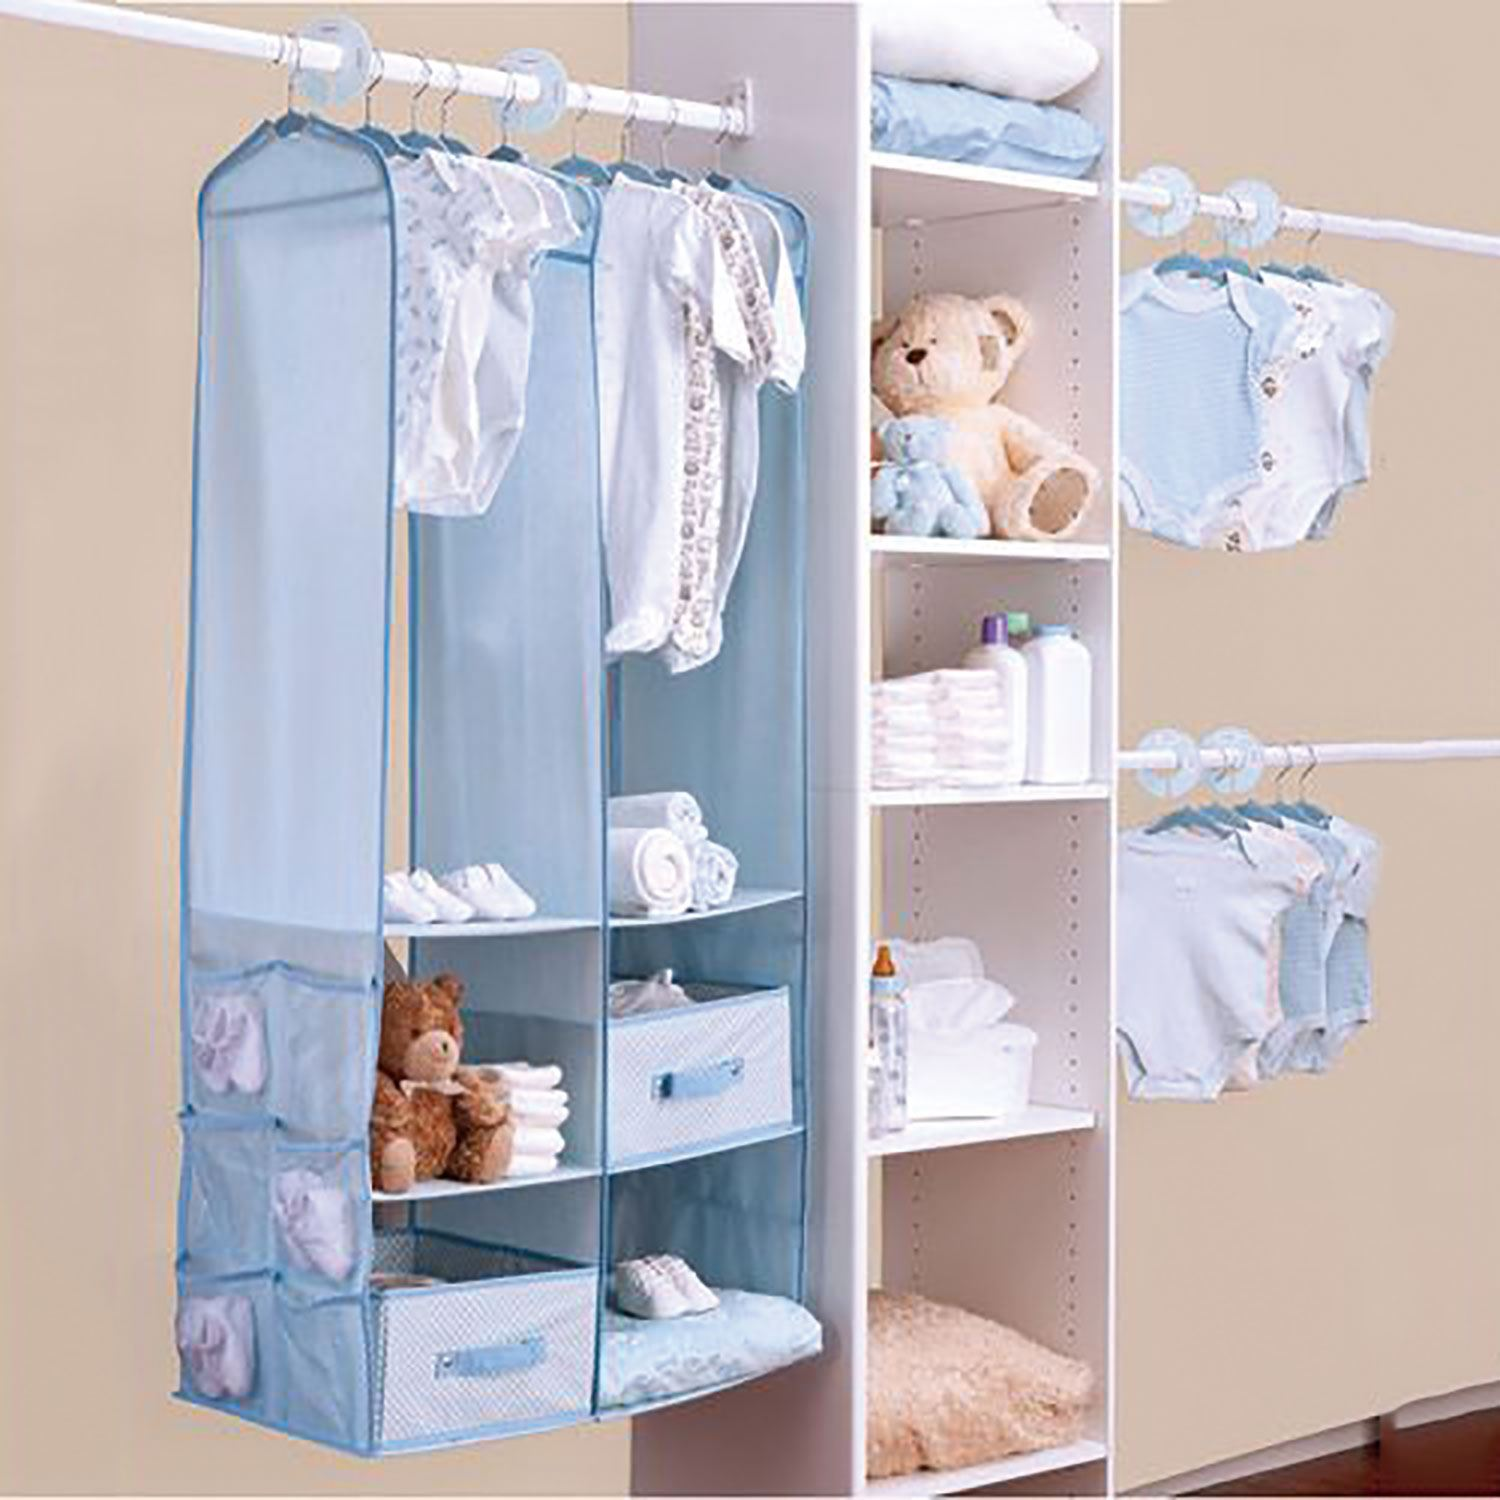 shoe hanging organiser section aebe shelves clothes wardrobe itm storage garment tidy